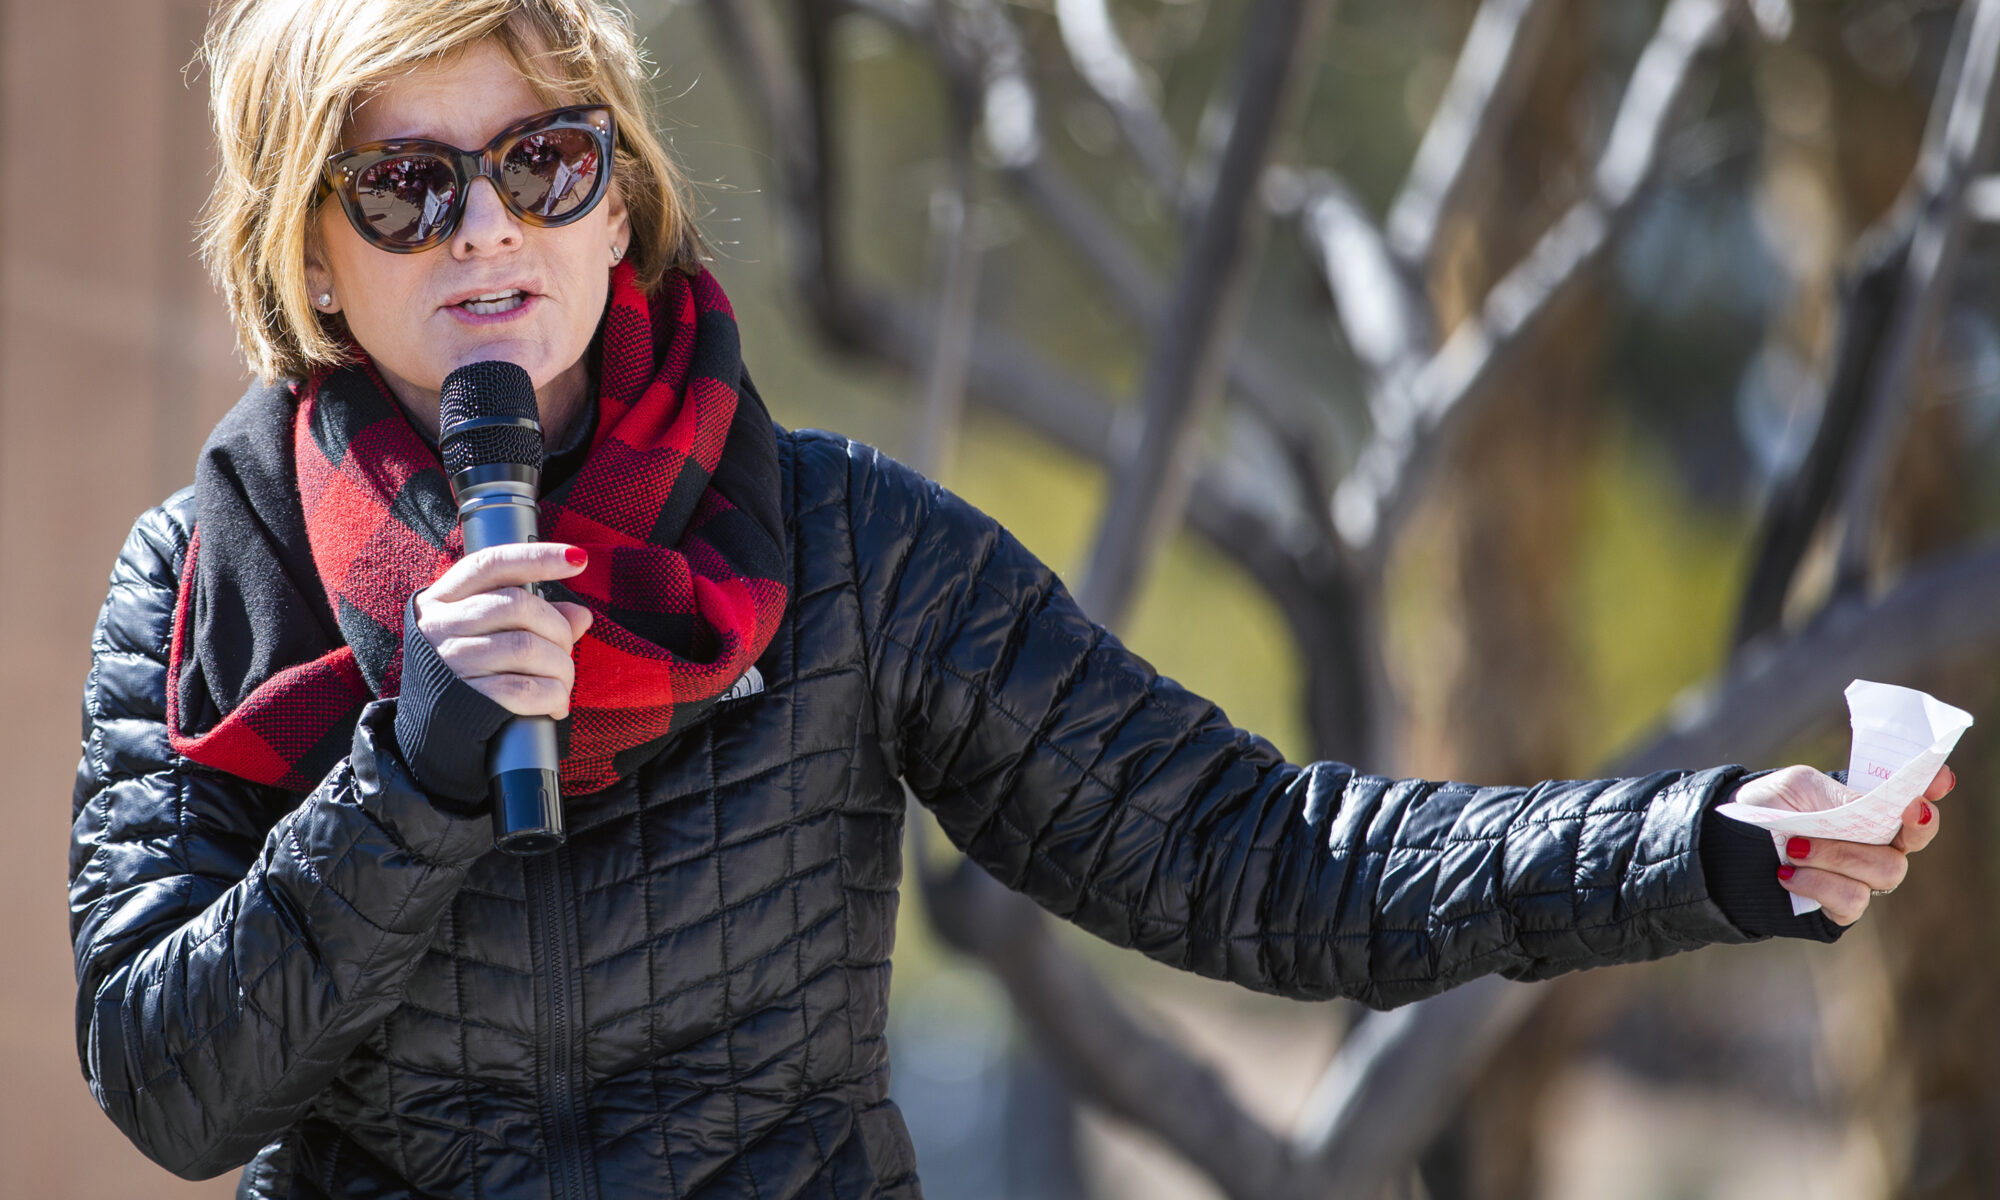 Susie Lee in a jacket and red scarf at an event